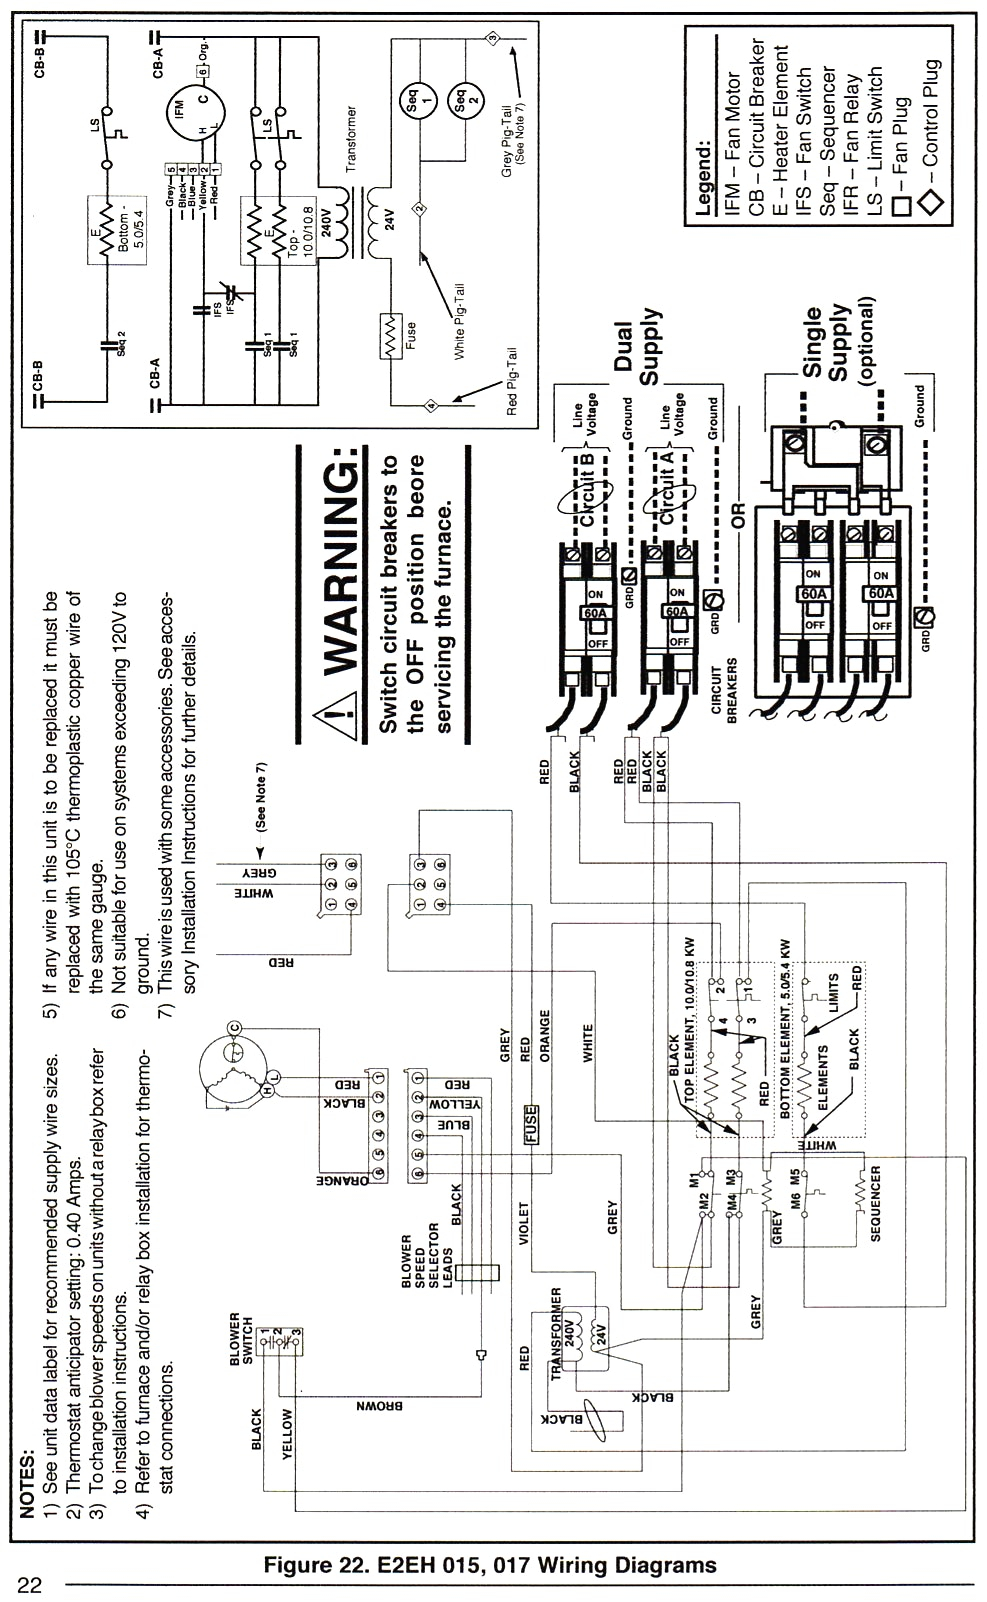 medium resolution of nordyne gas furnace wiring diagram wiring diagram view gibson gas furnace wiring